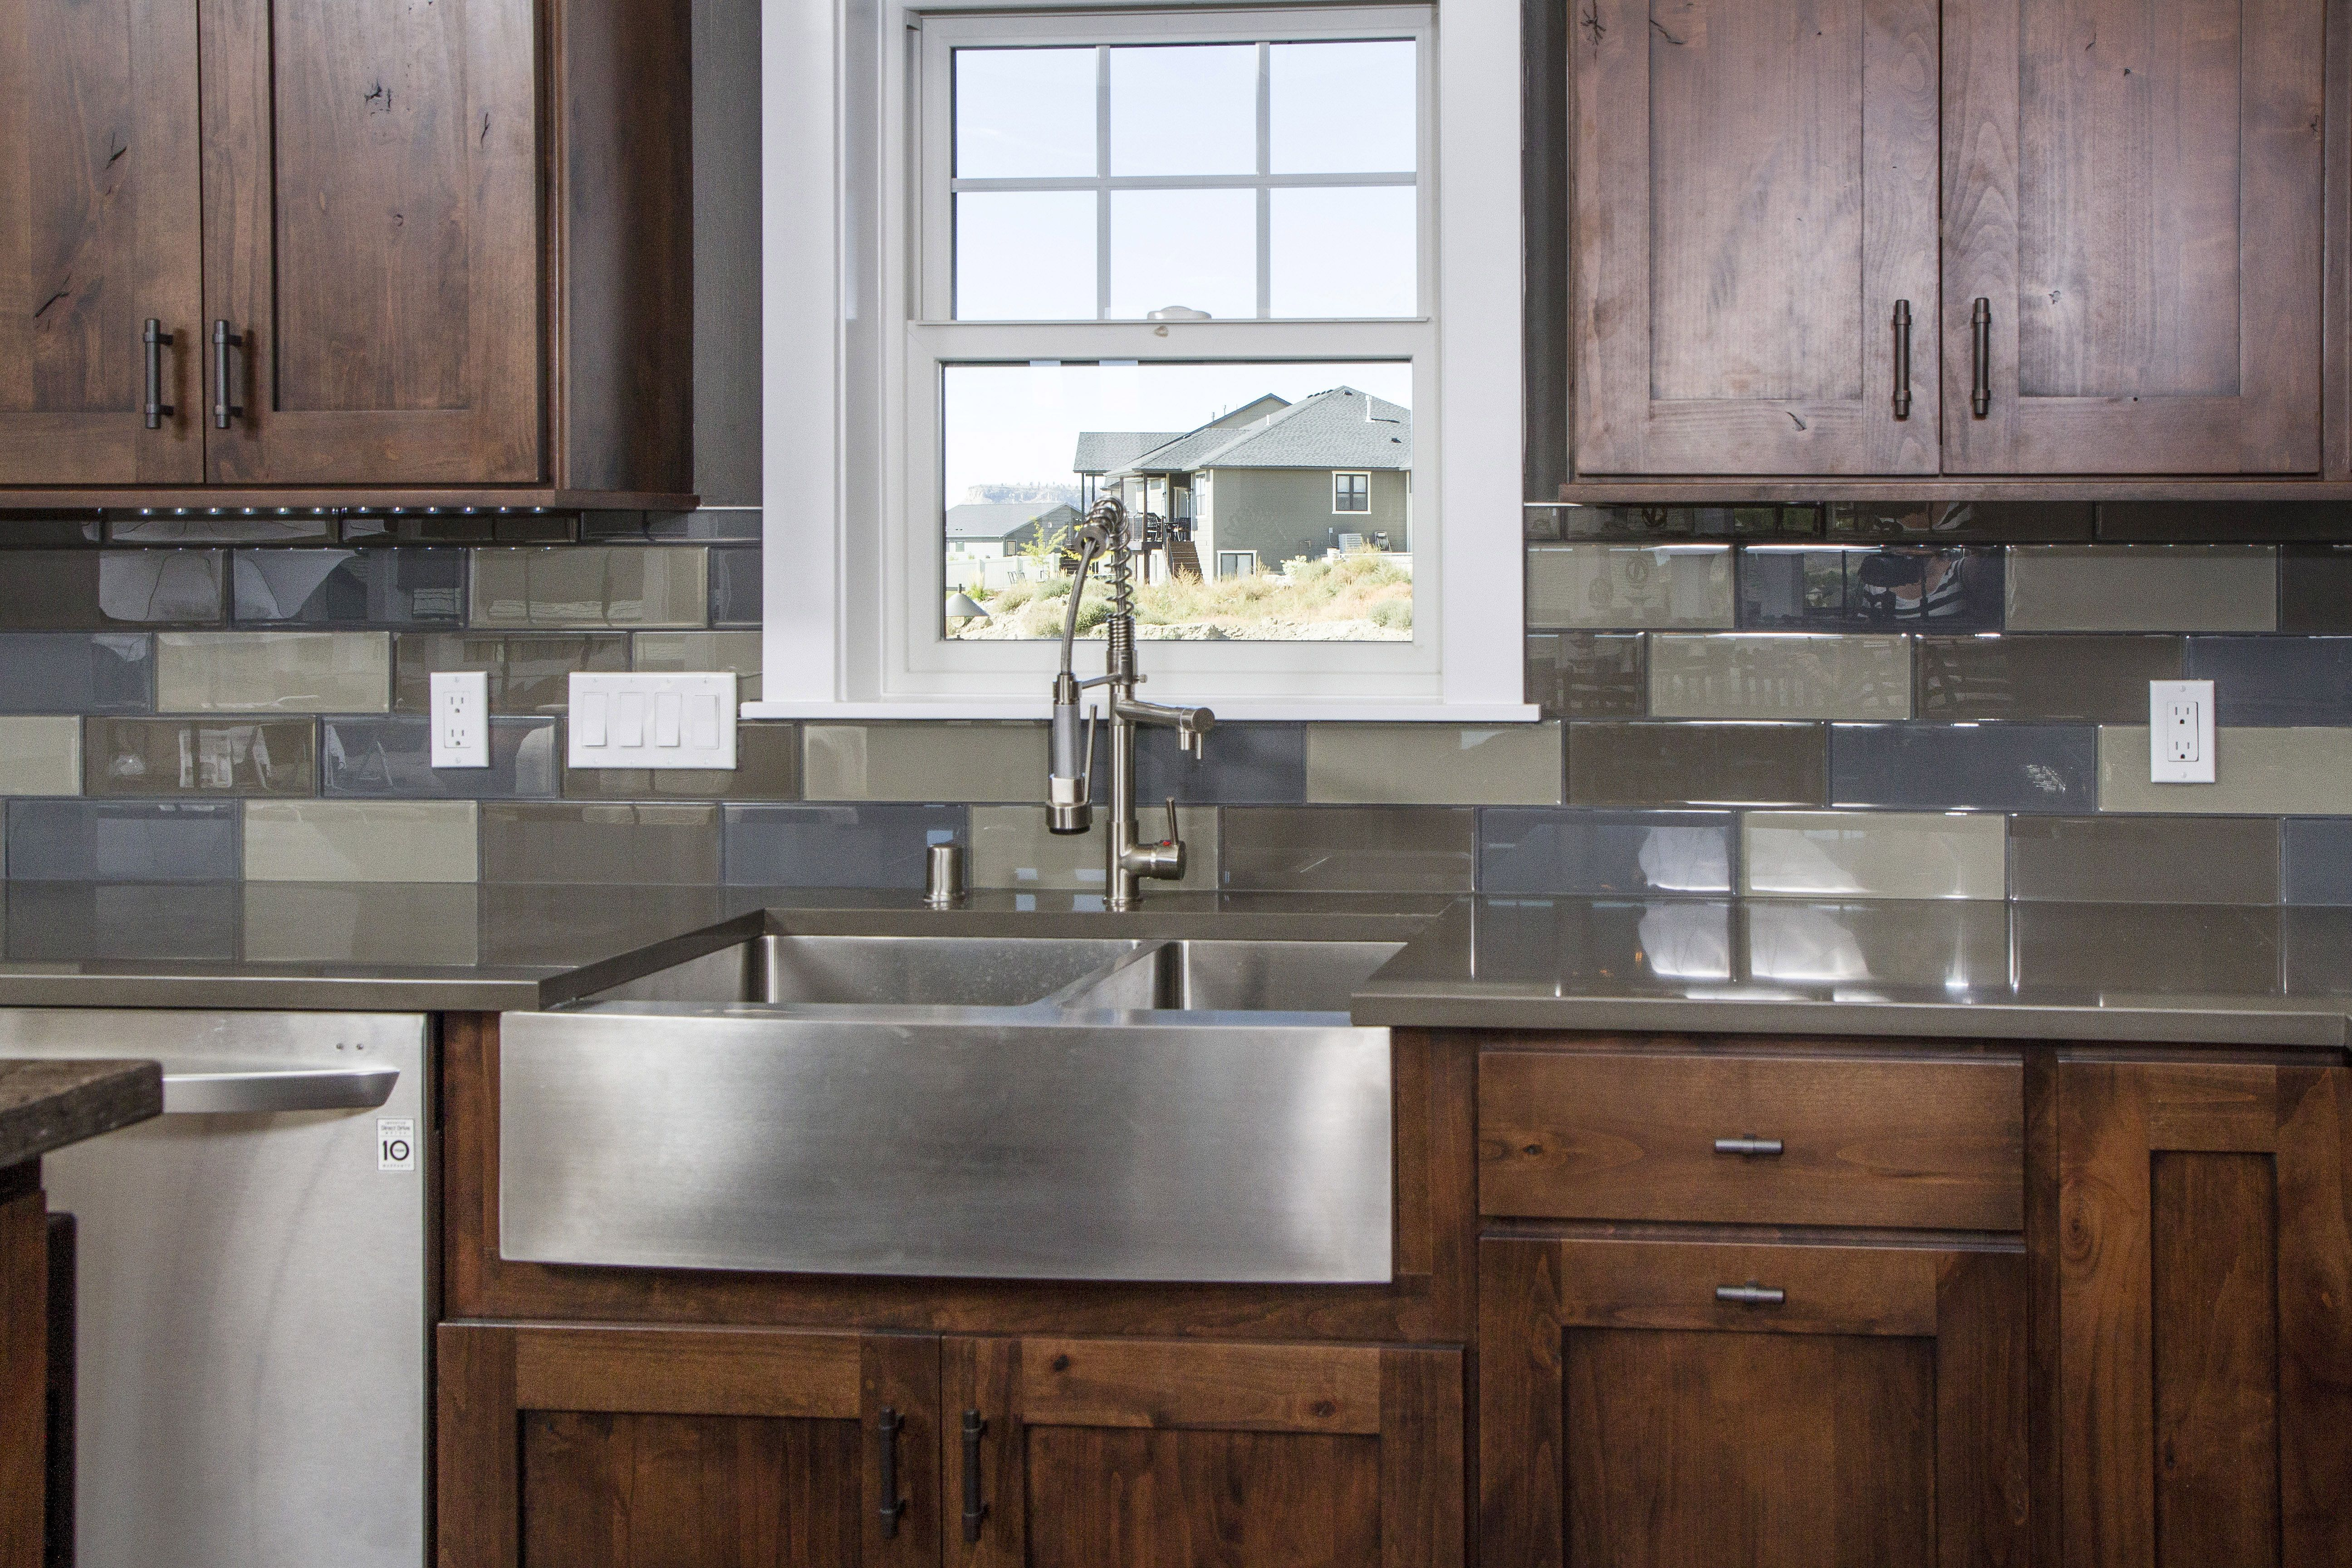 Bigcreek Knotty Alder Latte Onyx Crown Cabinets Kitchen Cabinets Home Decor